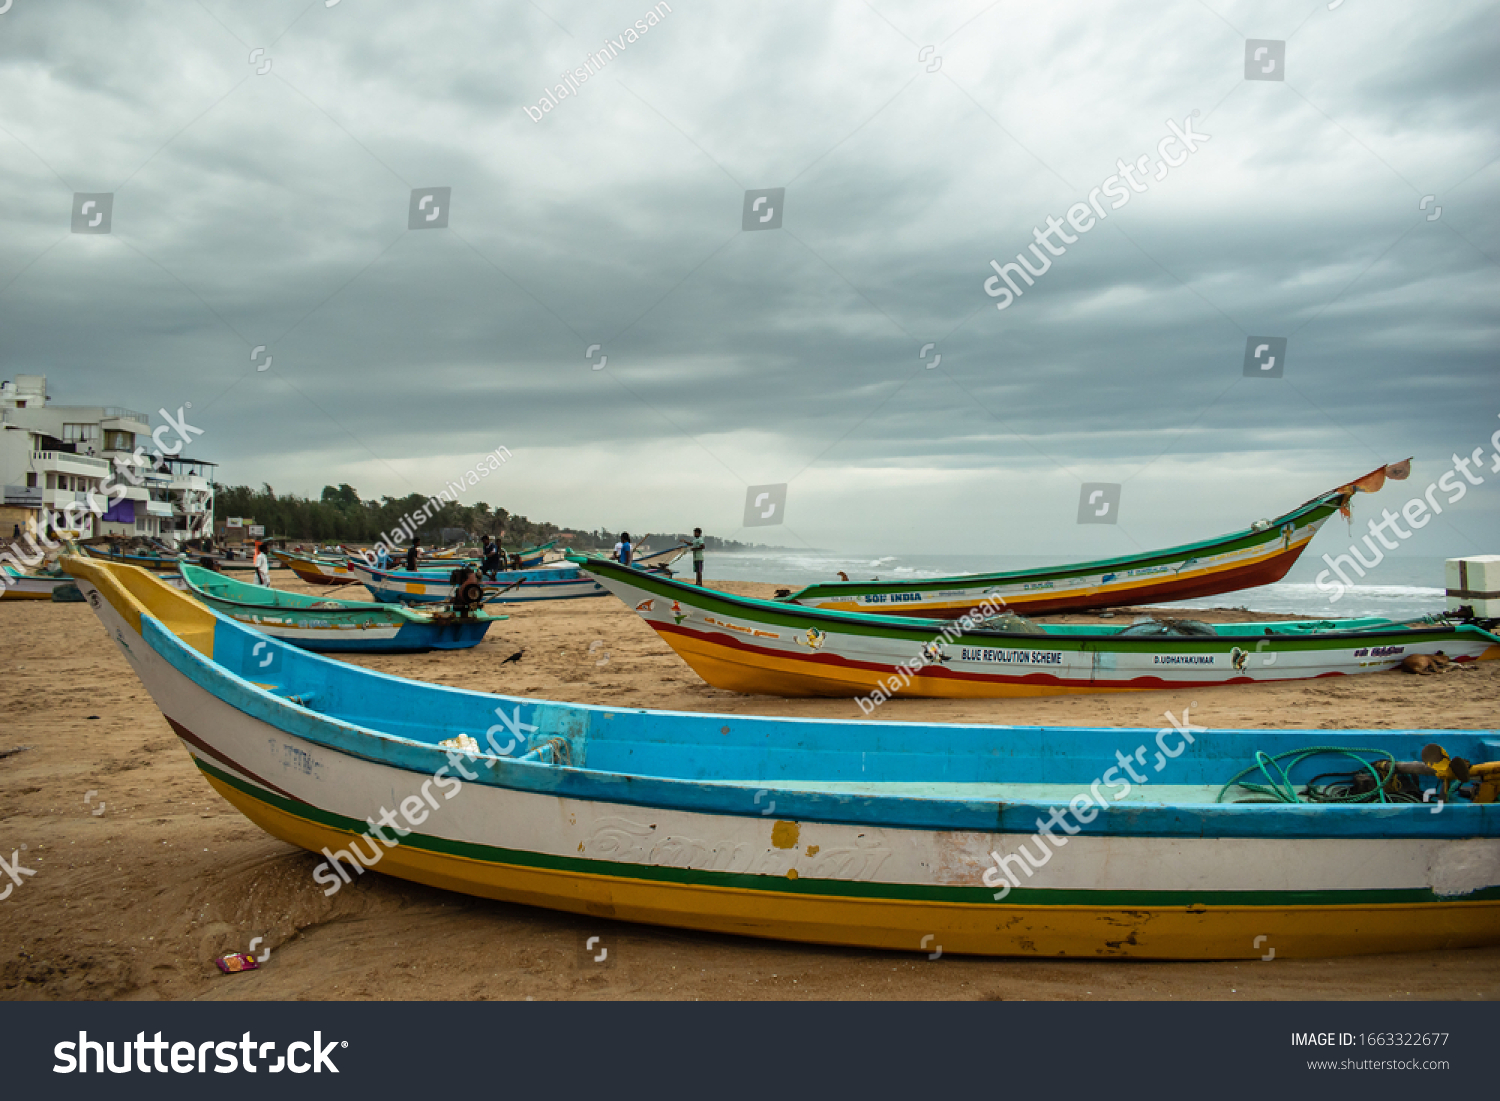 Mamallapuram, Tamil Nadu, India - August 2018: Fishing boats idle on the Mahabalipuram beach on a cloudy day.